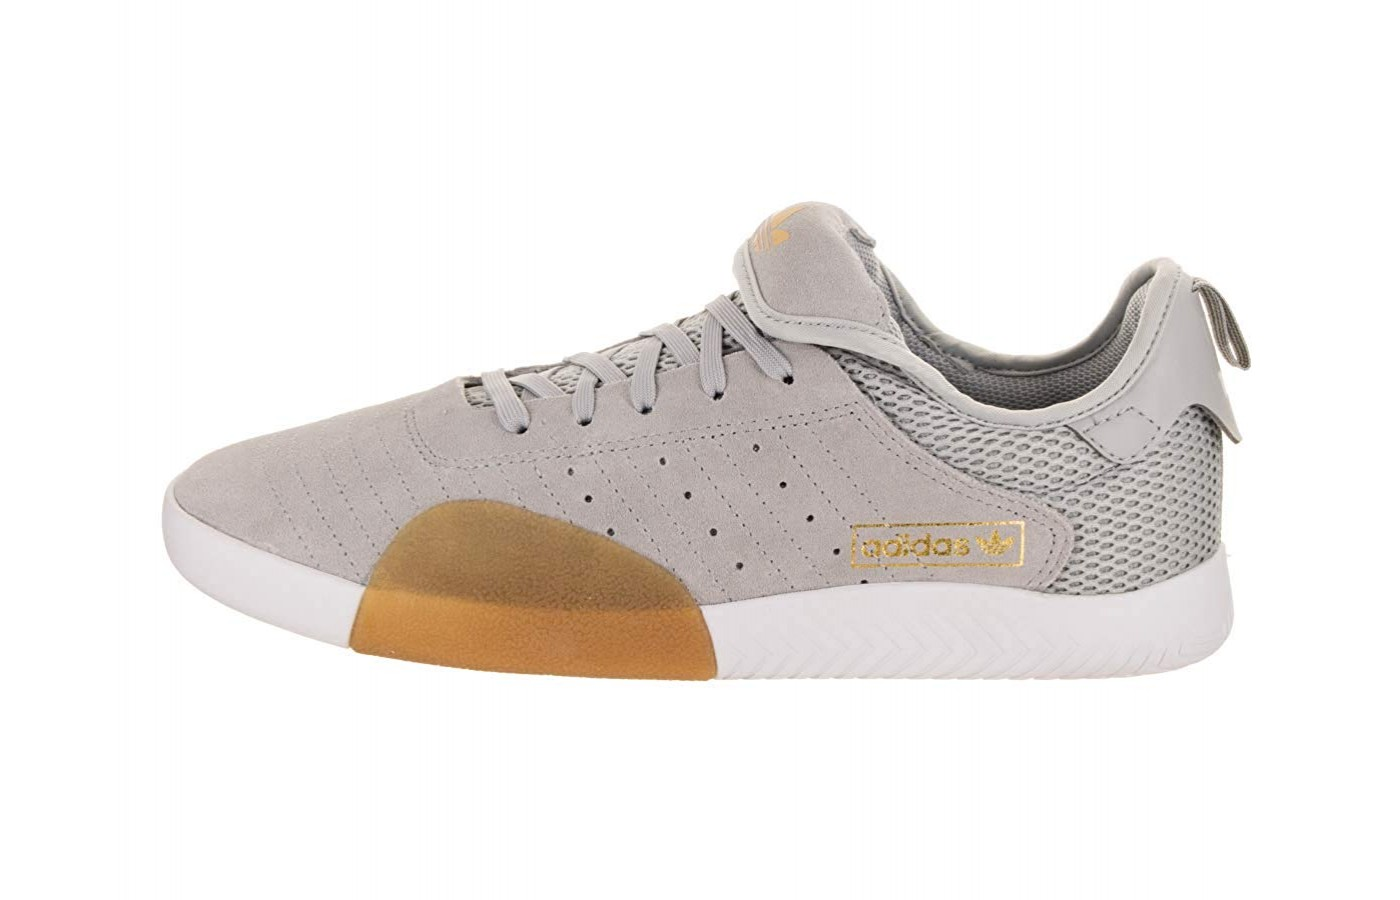 Left side view of Adidas 3ST.003